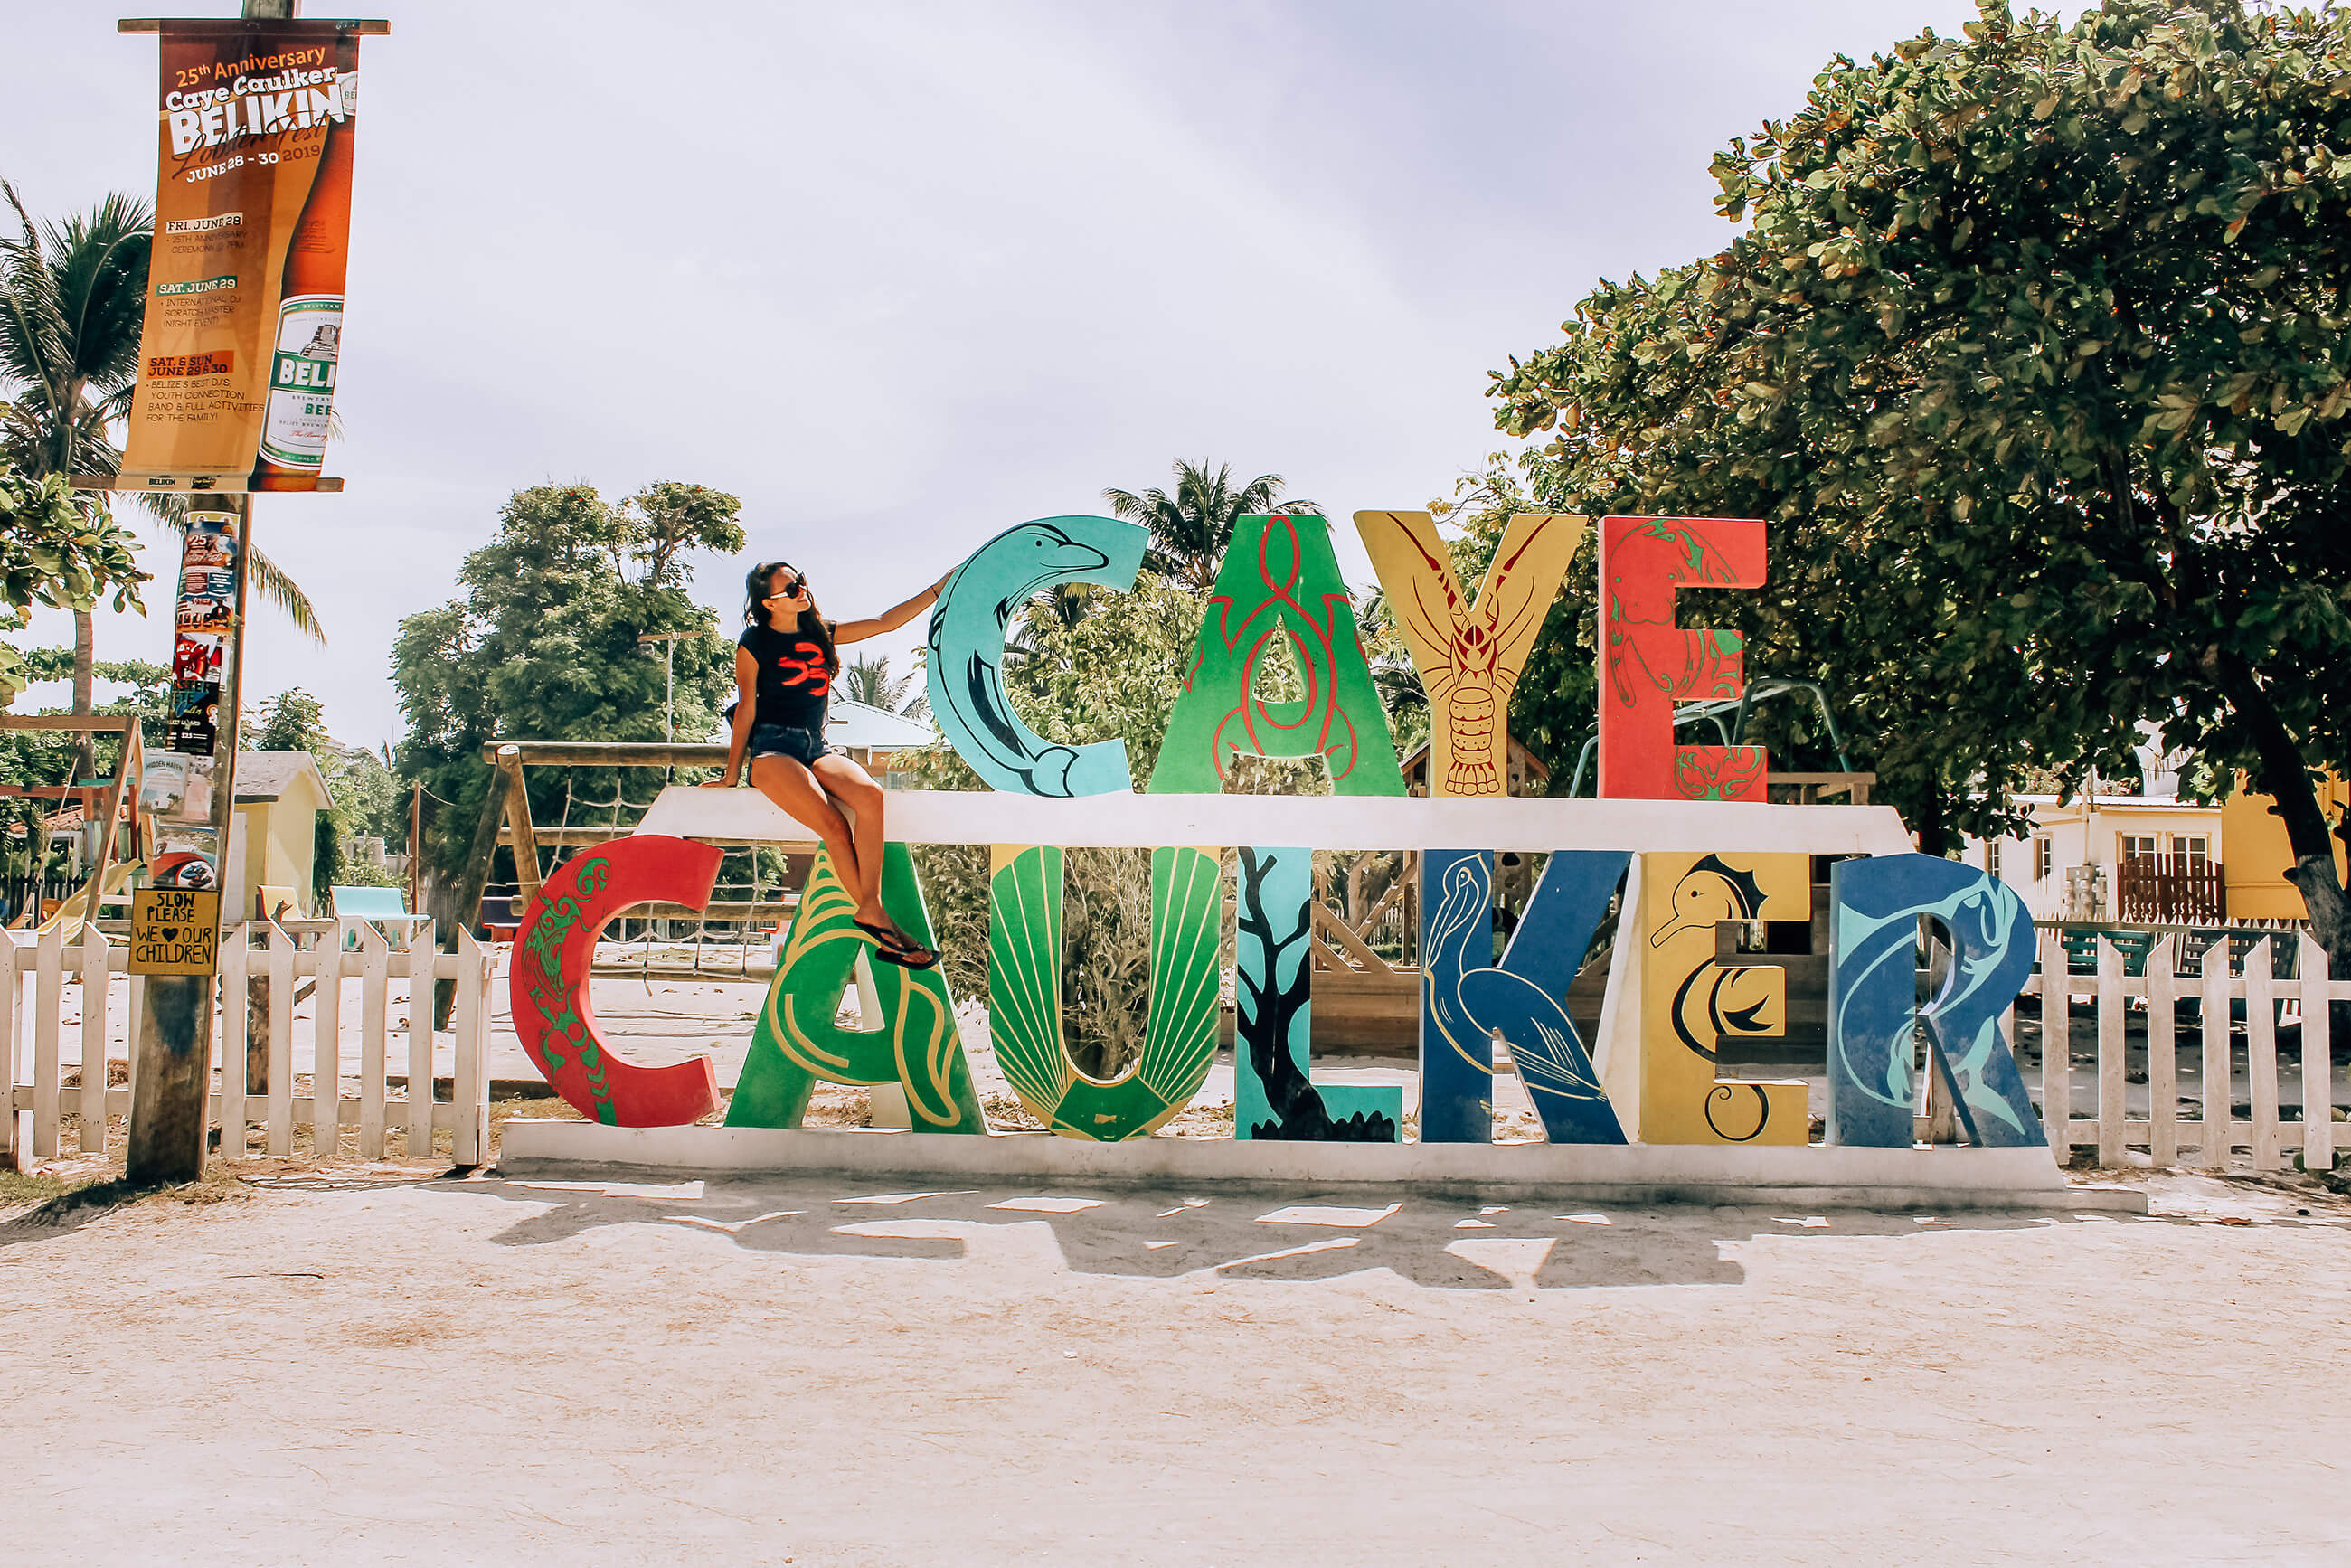 https://bubo.sk/uploads/galleries/7388/alenaspisakova_belize_caye-caulker_img_4816.jpg